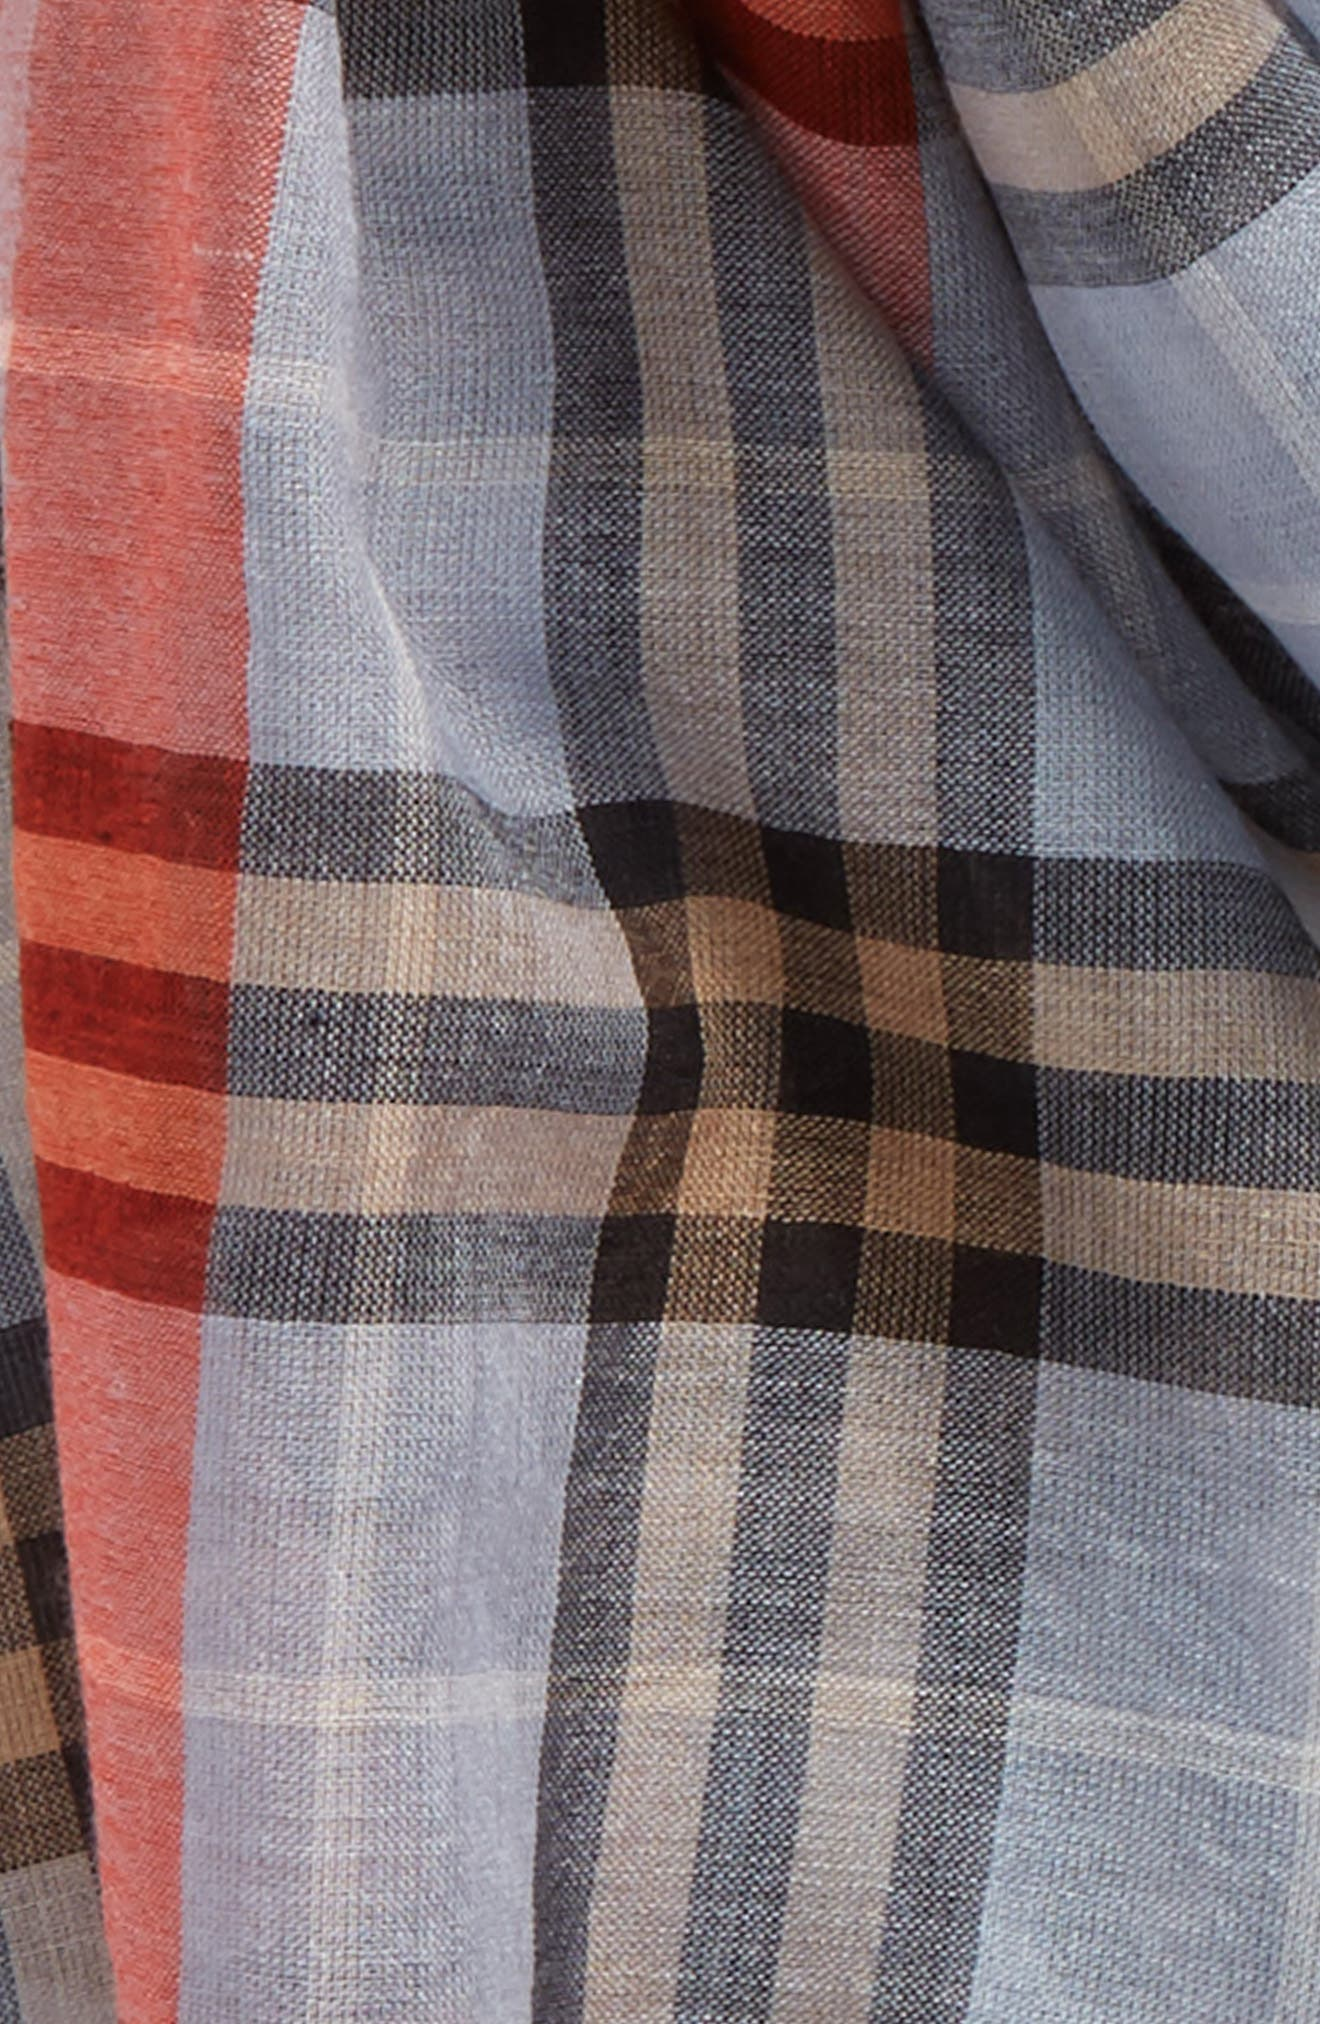 Border Vintage Check Wool & Silk Scarf,                             Alternate thumbnail 4, color,                             450